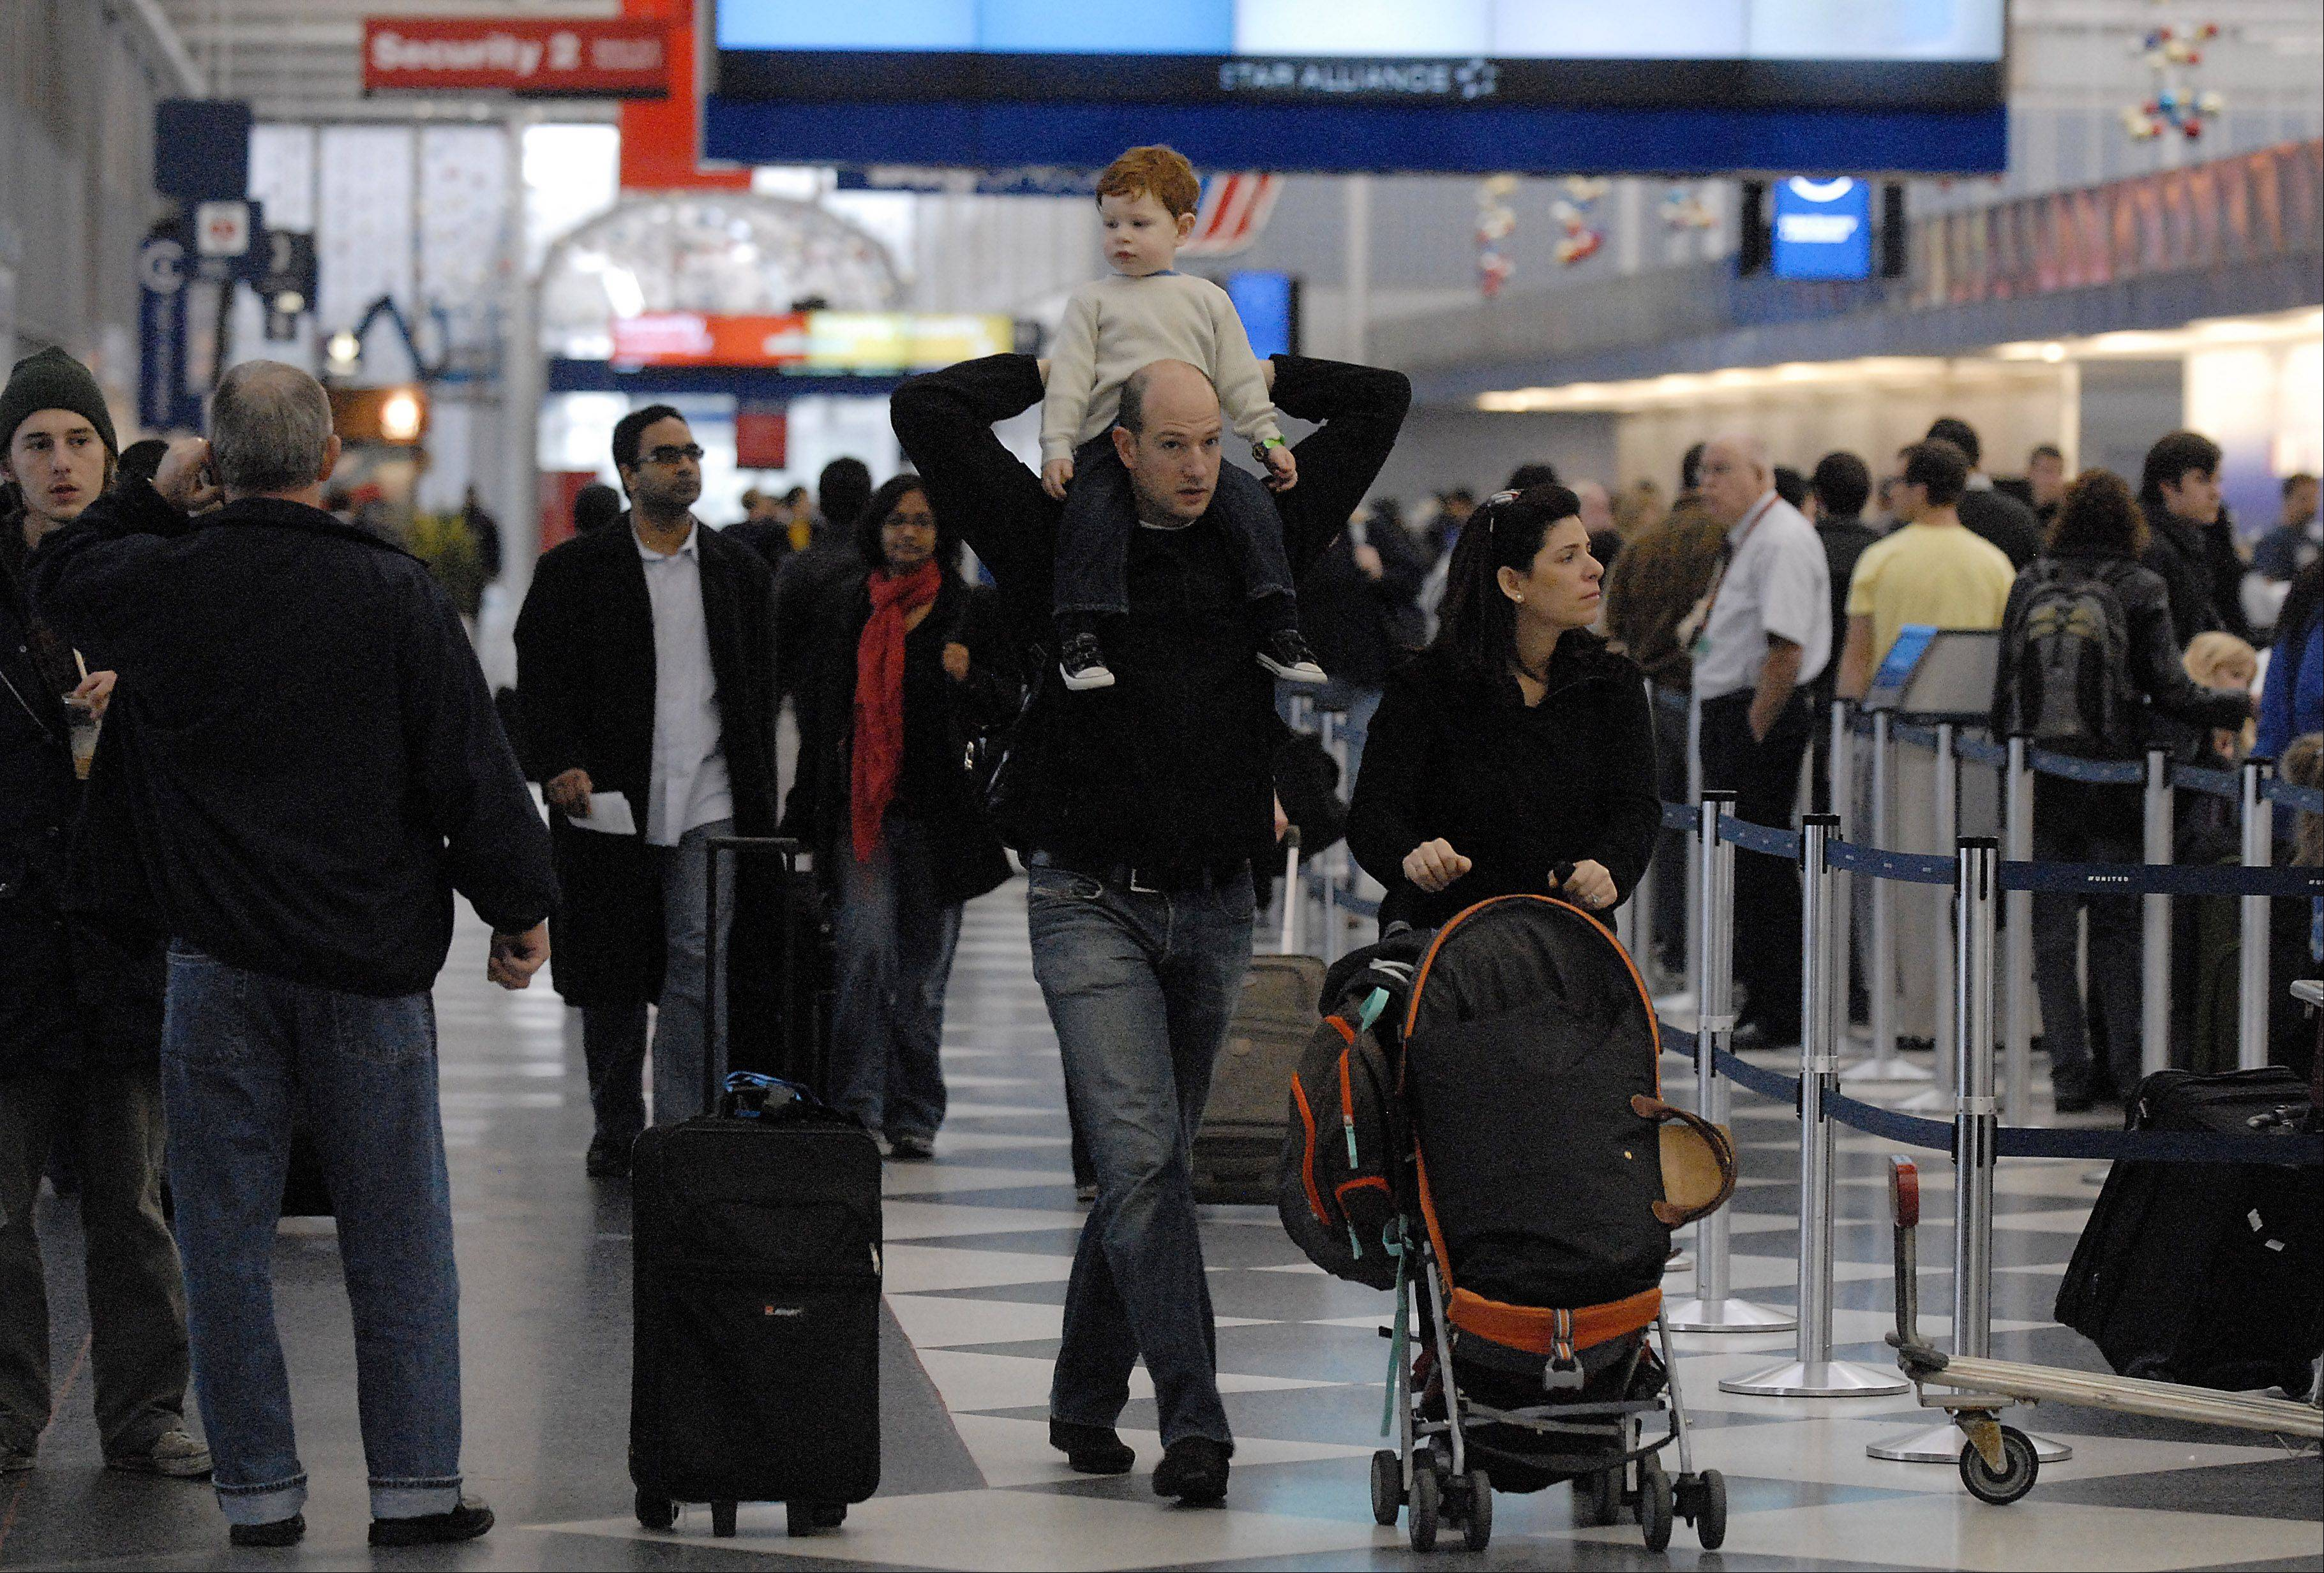 It's a busy holiday traveling season with 1.9 million expected to head through O'Hare and Midway international airports.